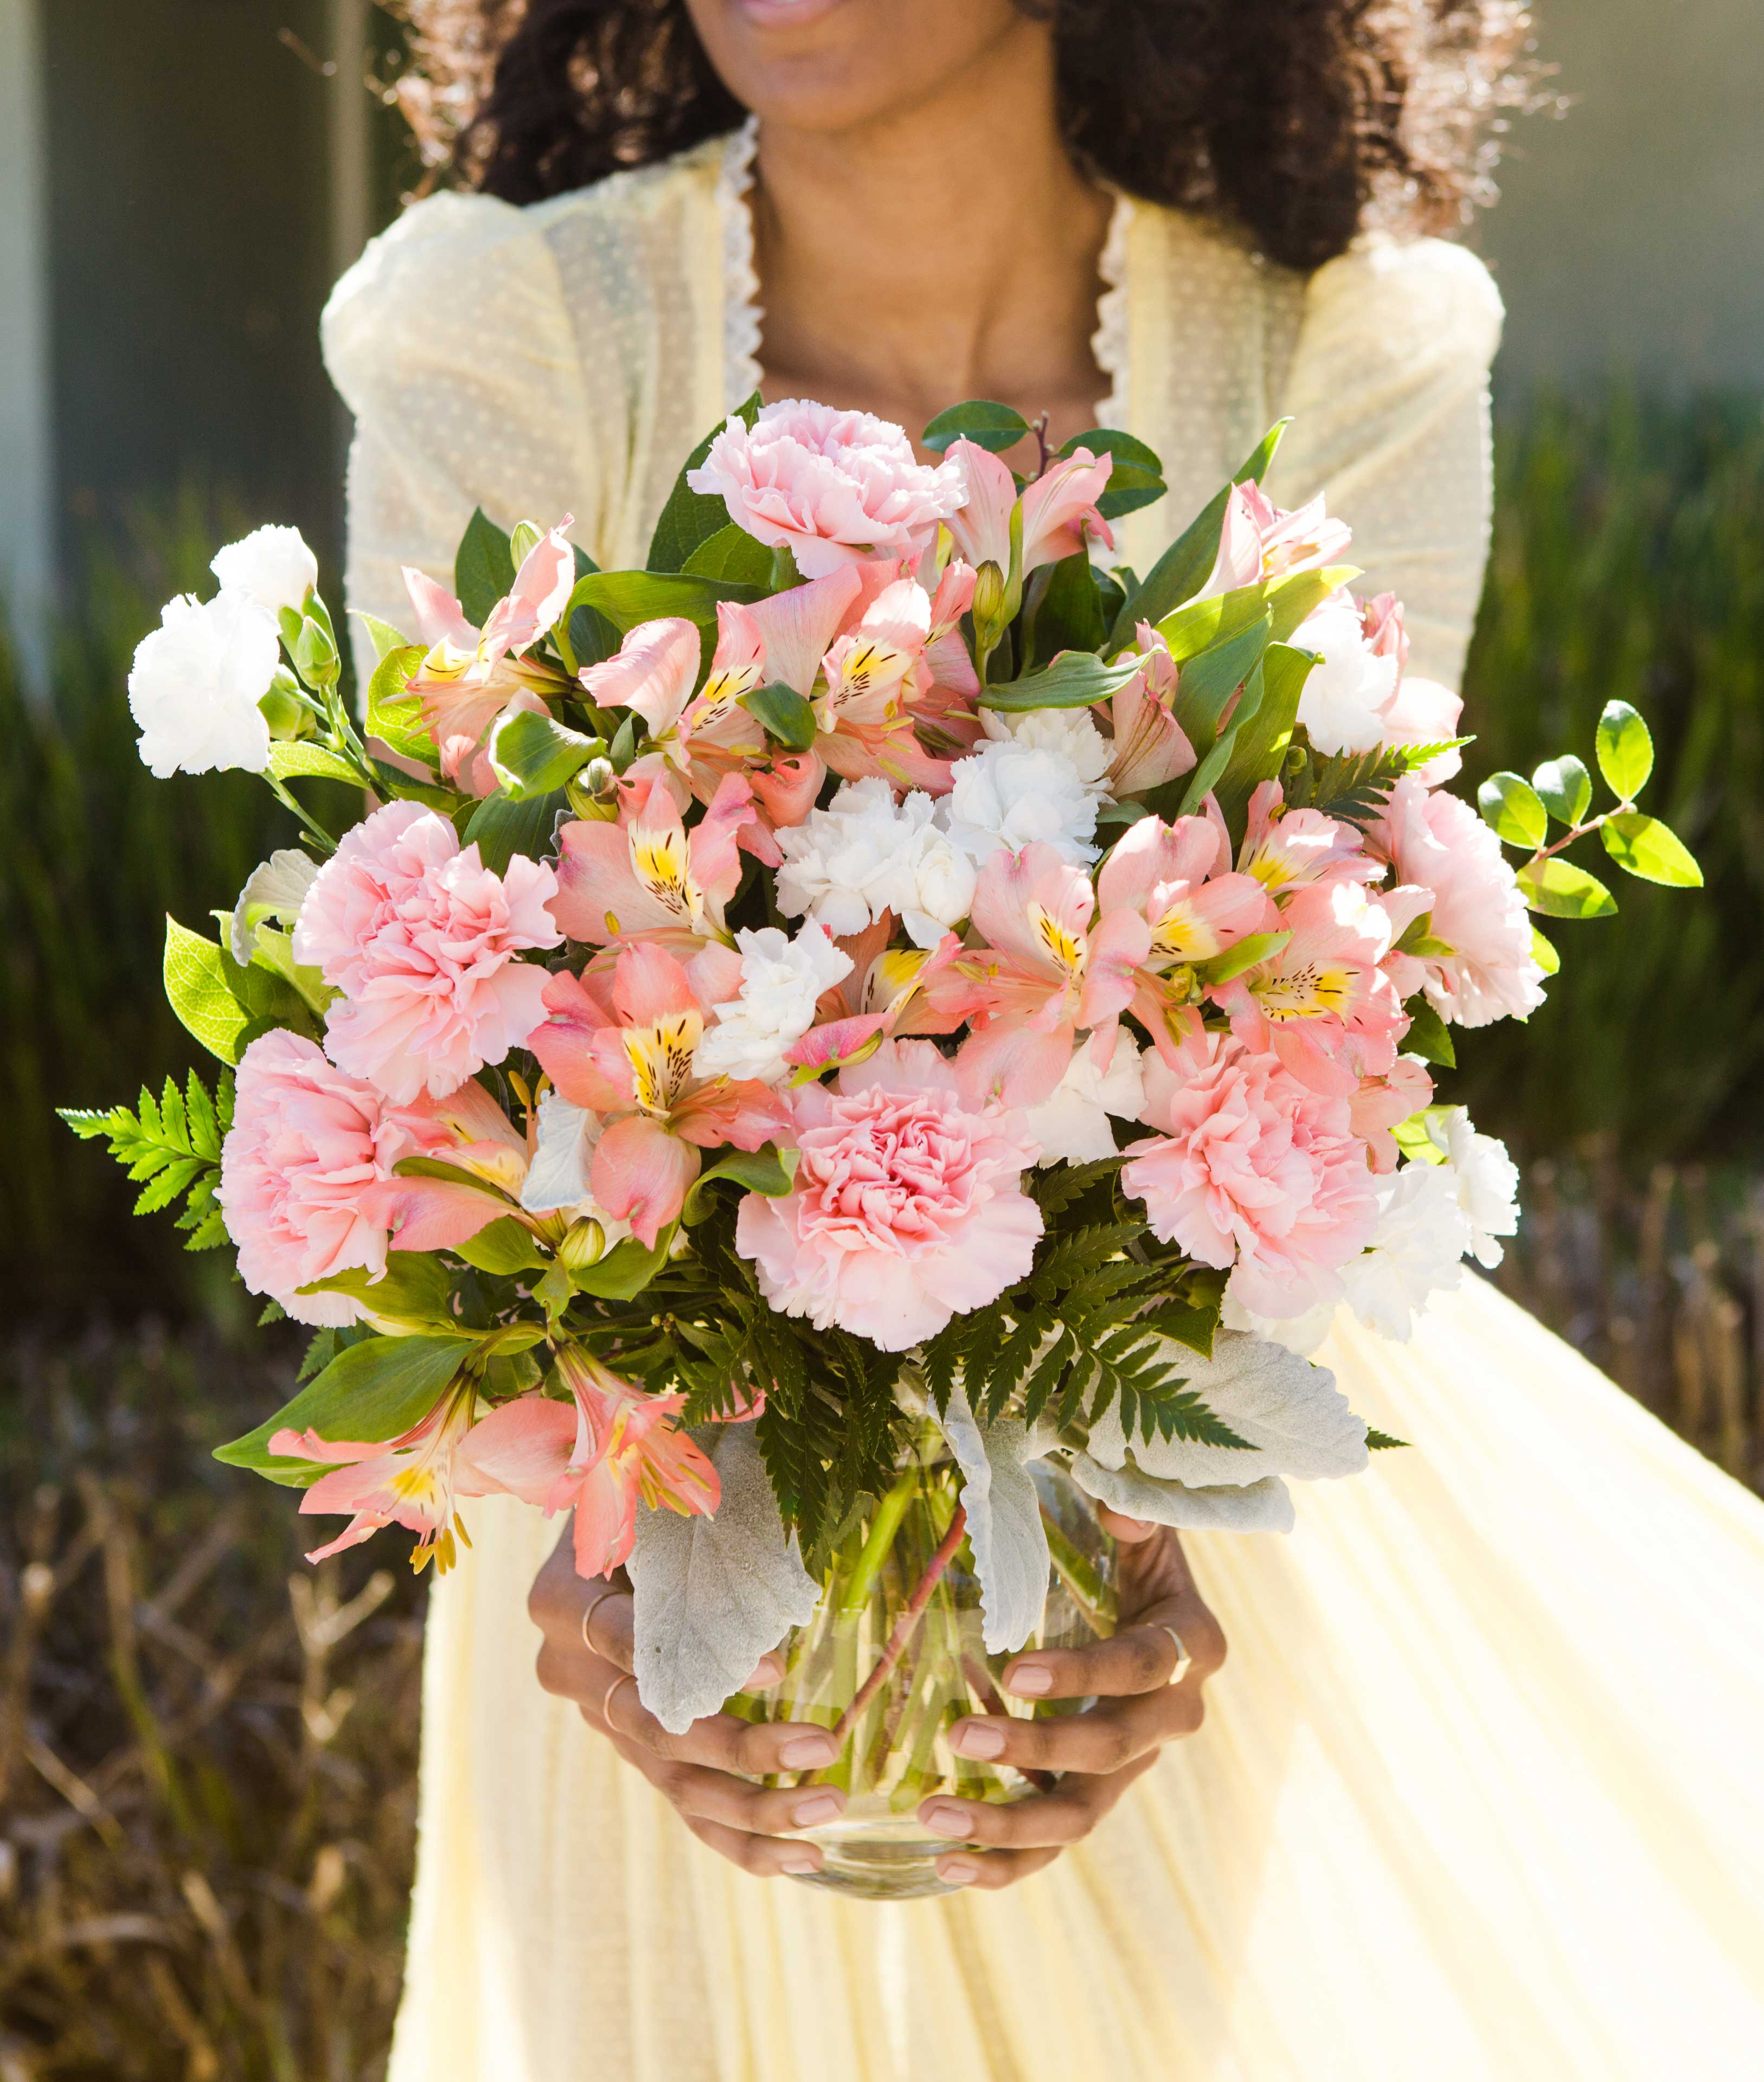 Pink and white carnations surrounded by dusty miller and greenery in a clear vase in girls hands